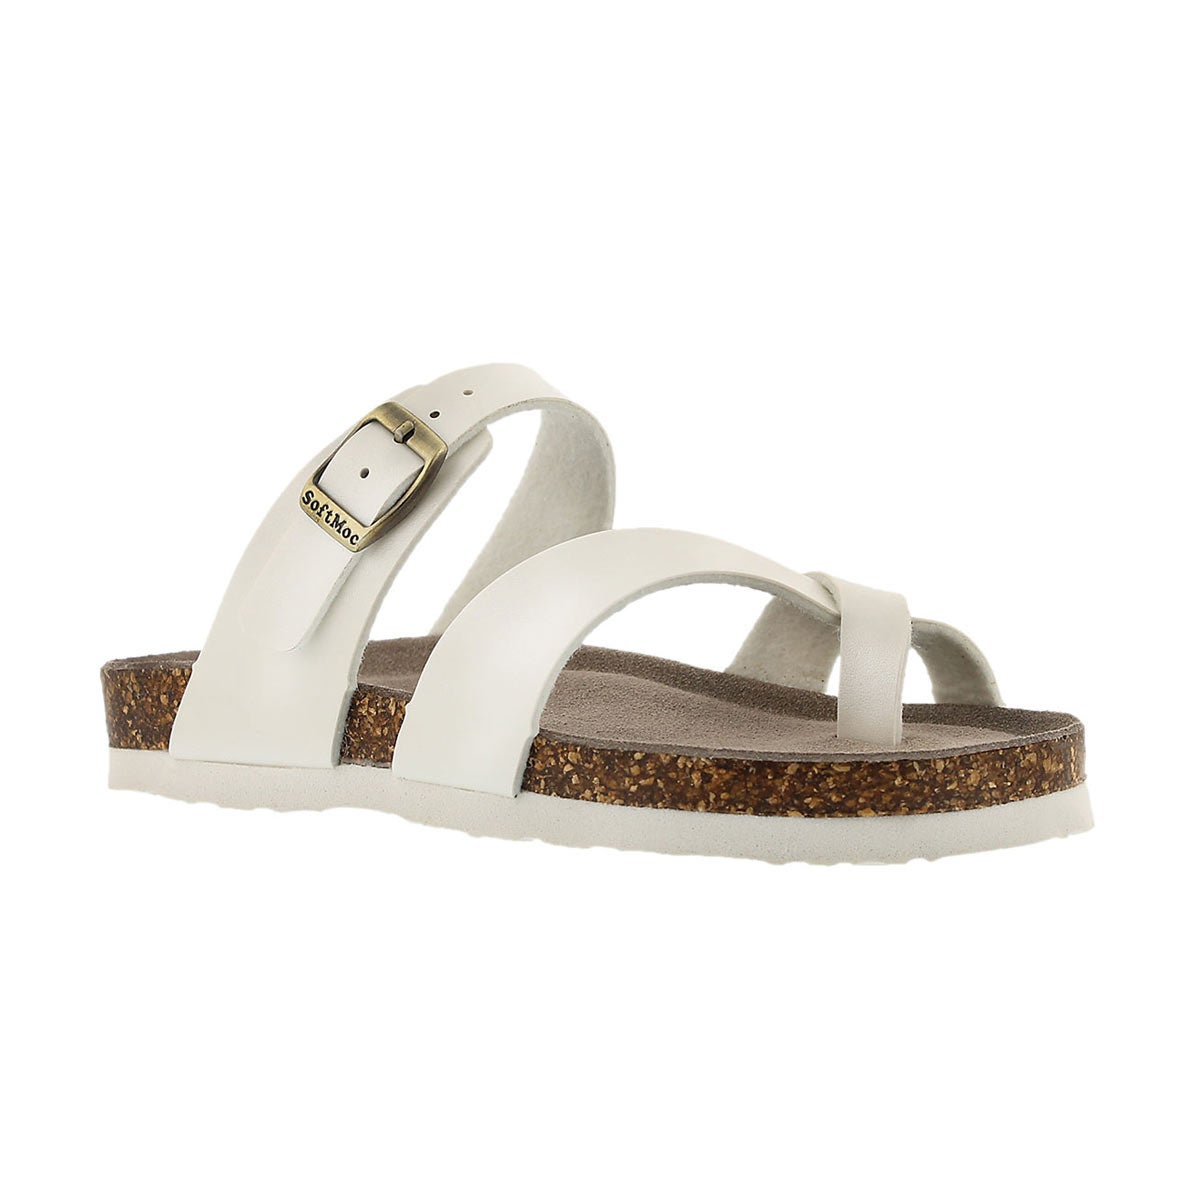 Girls' ALICIA moonstone toe loop sandals